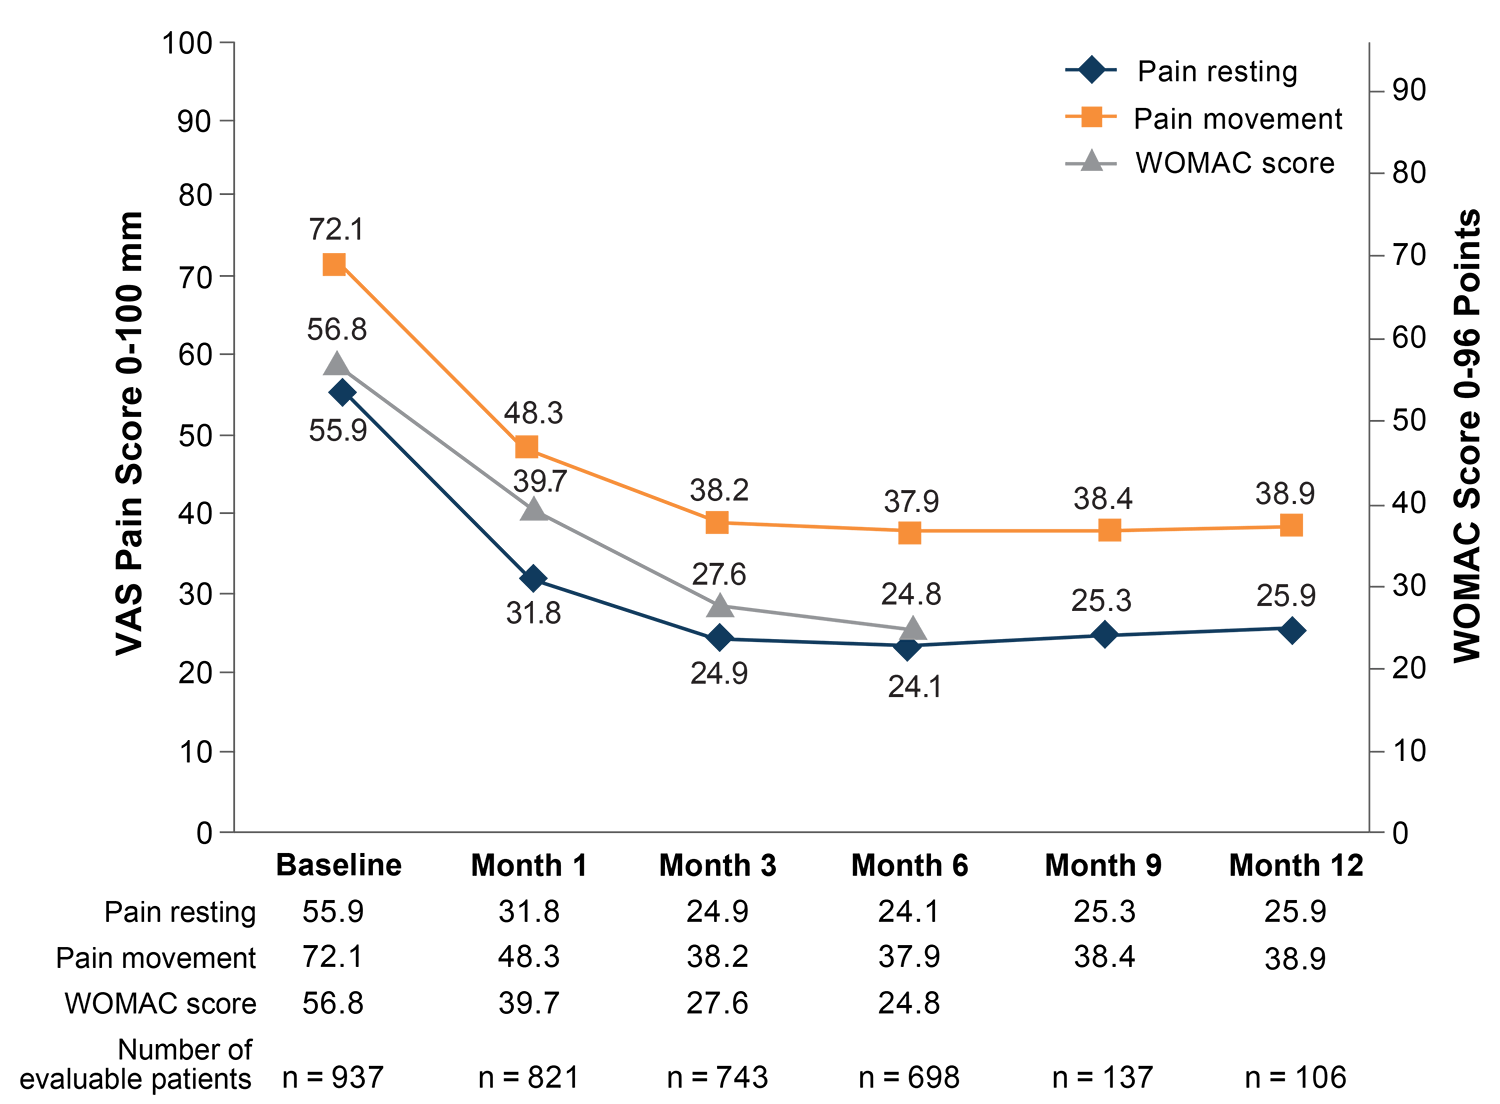 Line chart showing trend in pain scores and WOMAC scores after two HYMOVIS injections